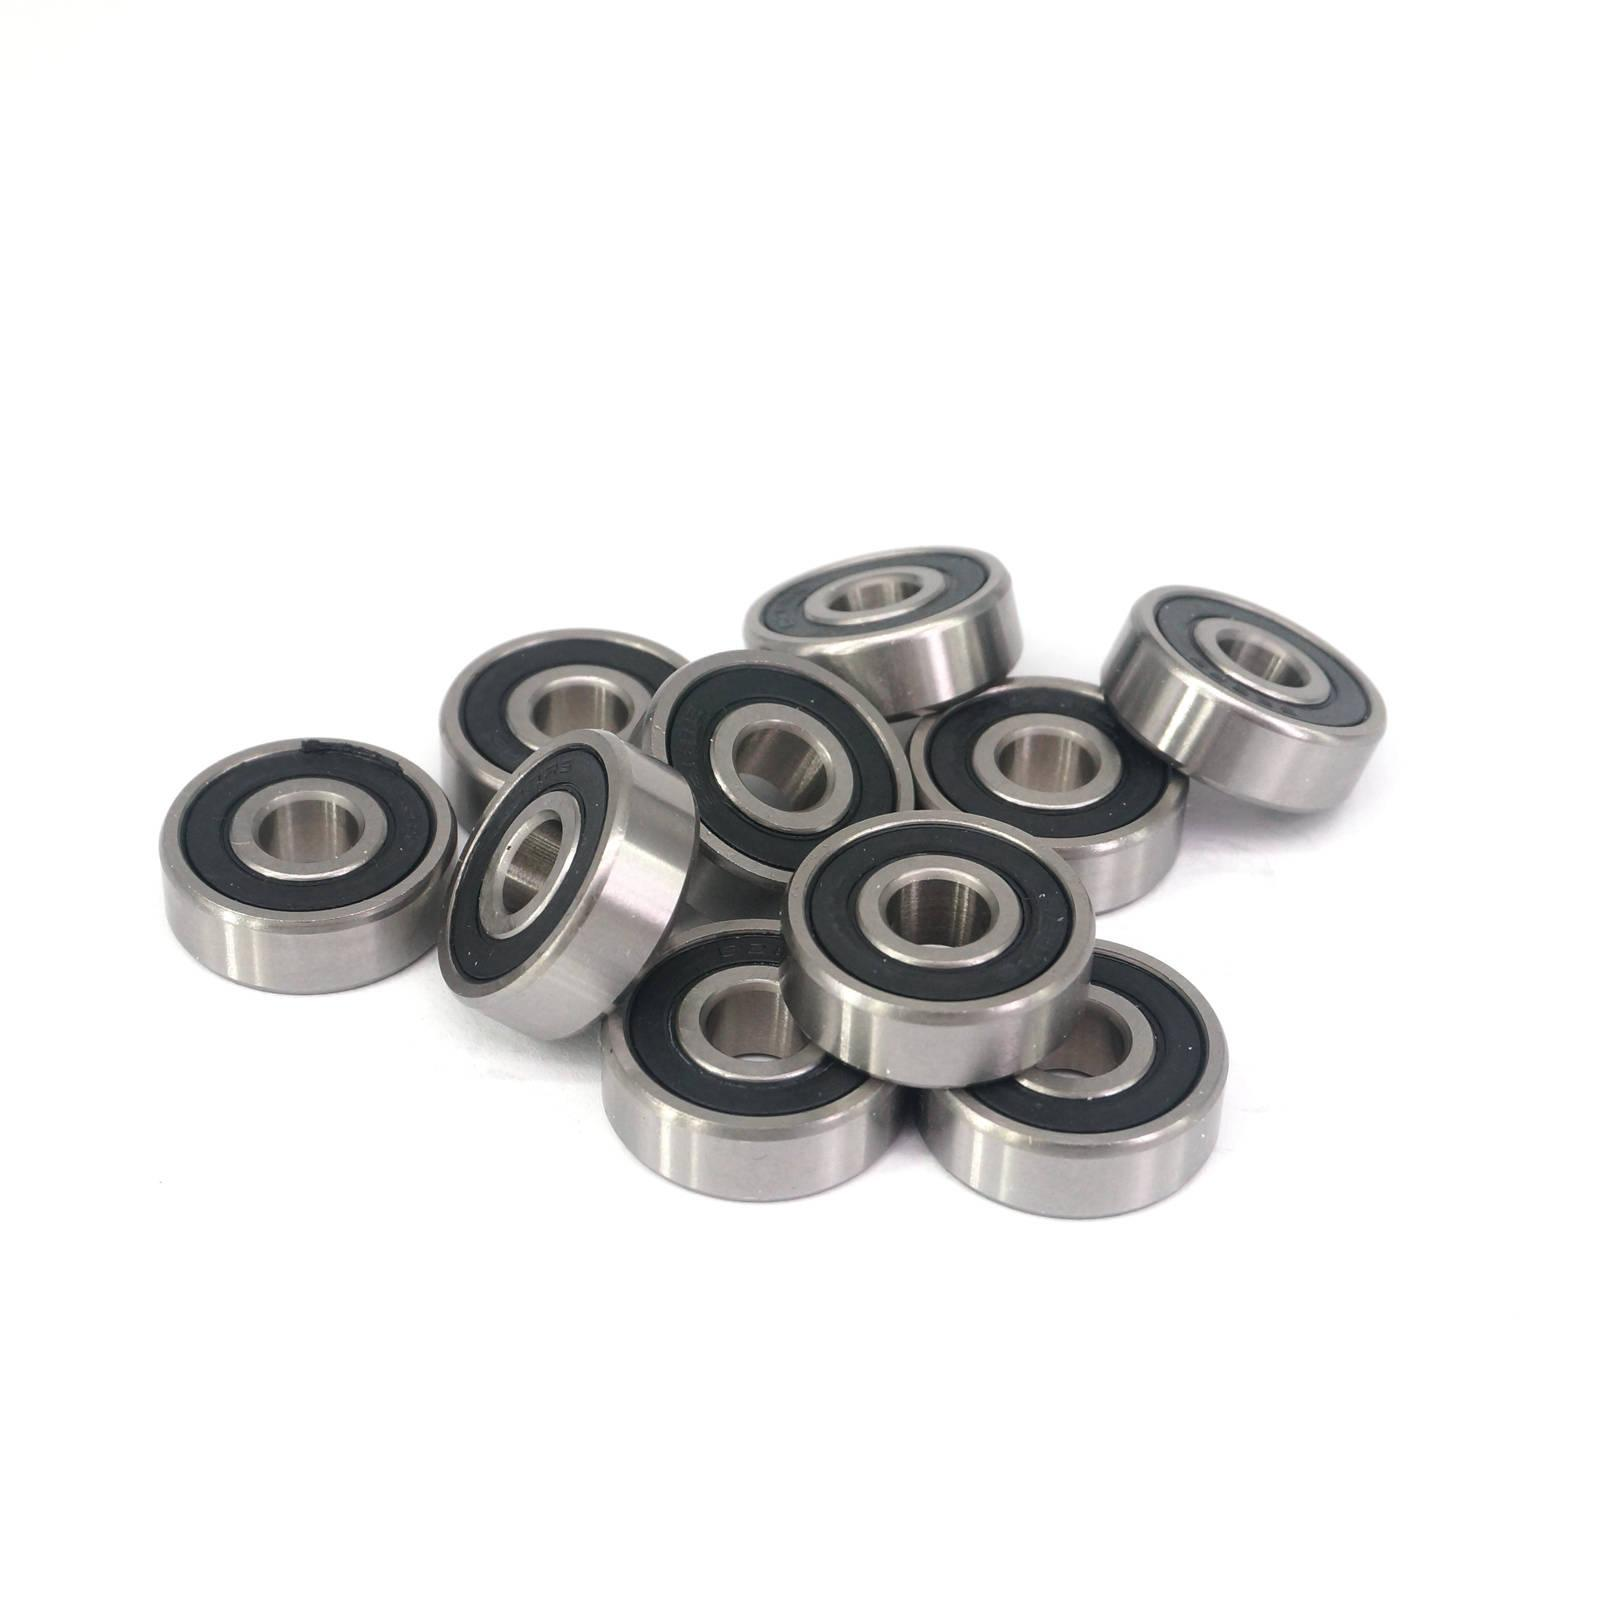 10pcs 628-2RS 8x24x8mm ABEC1 Thin-wall Shielded Deep Groove Ball Bearing image